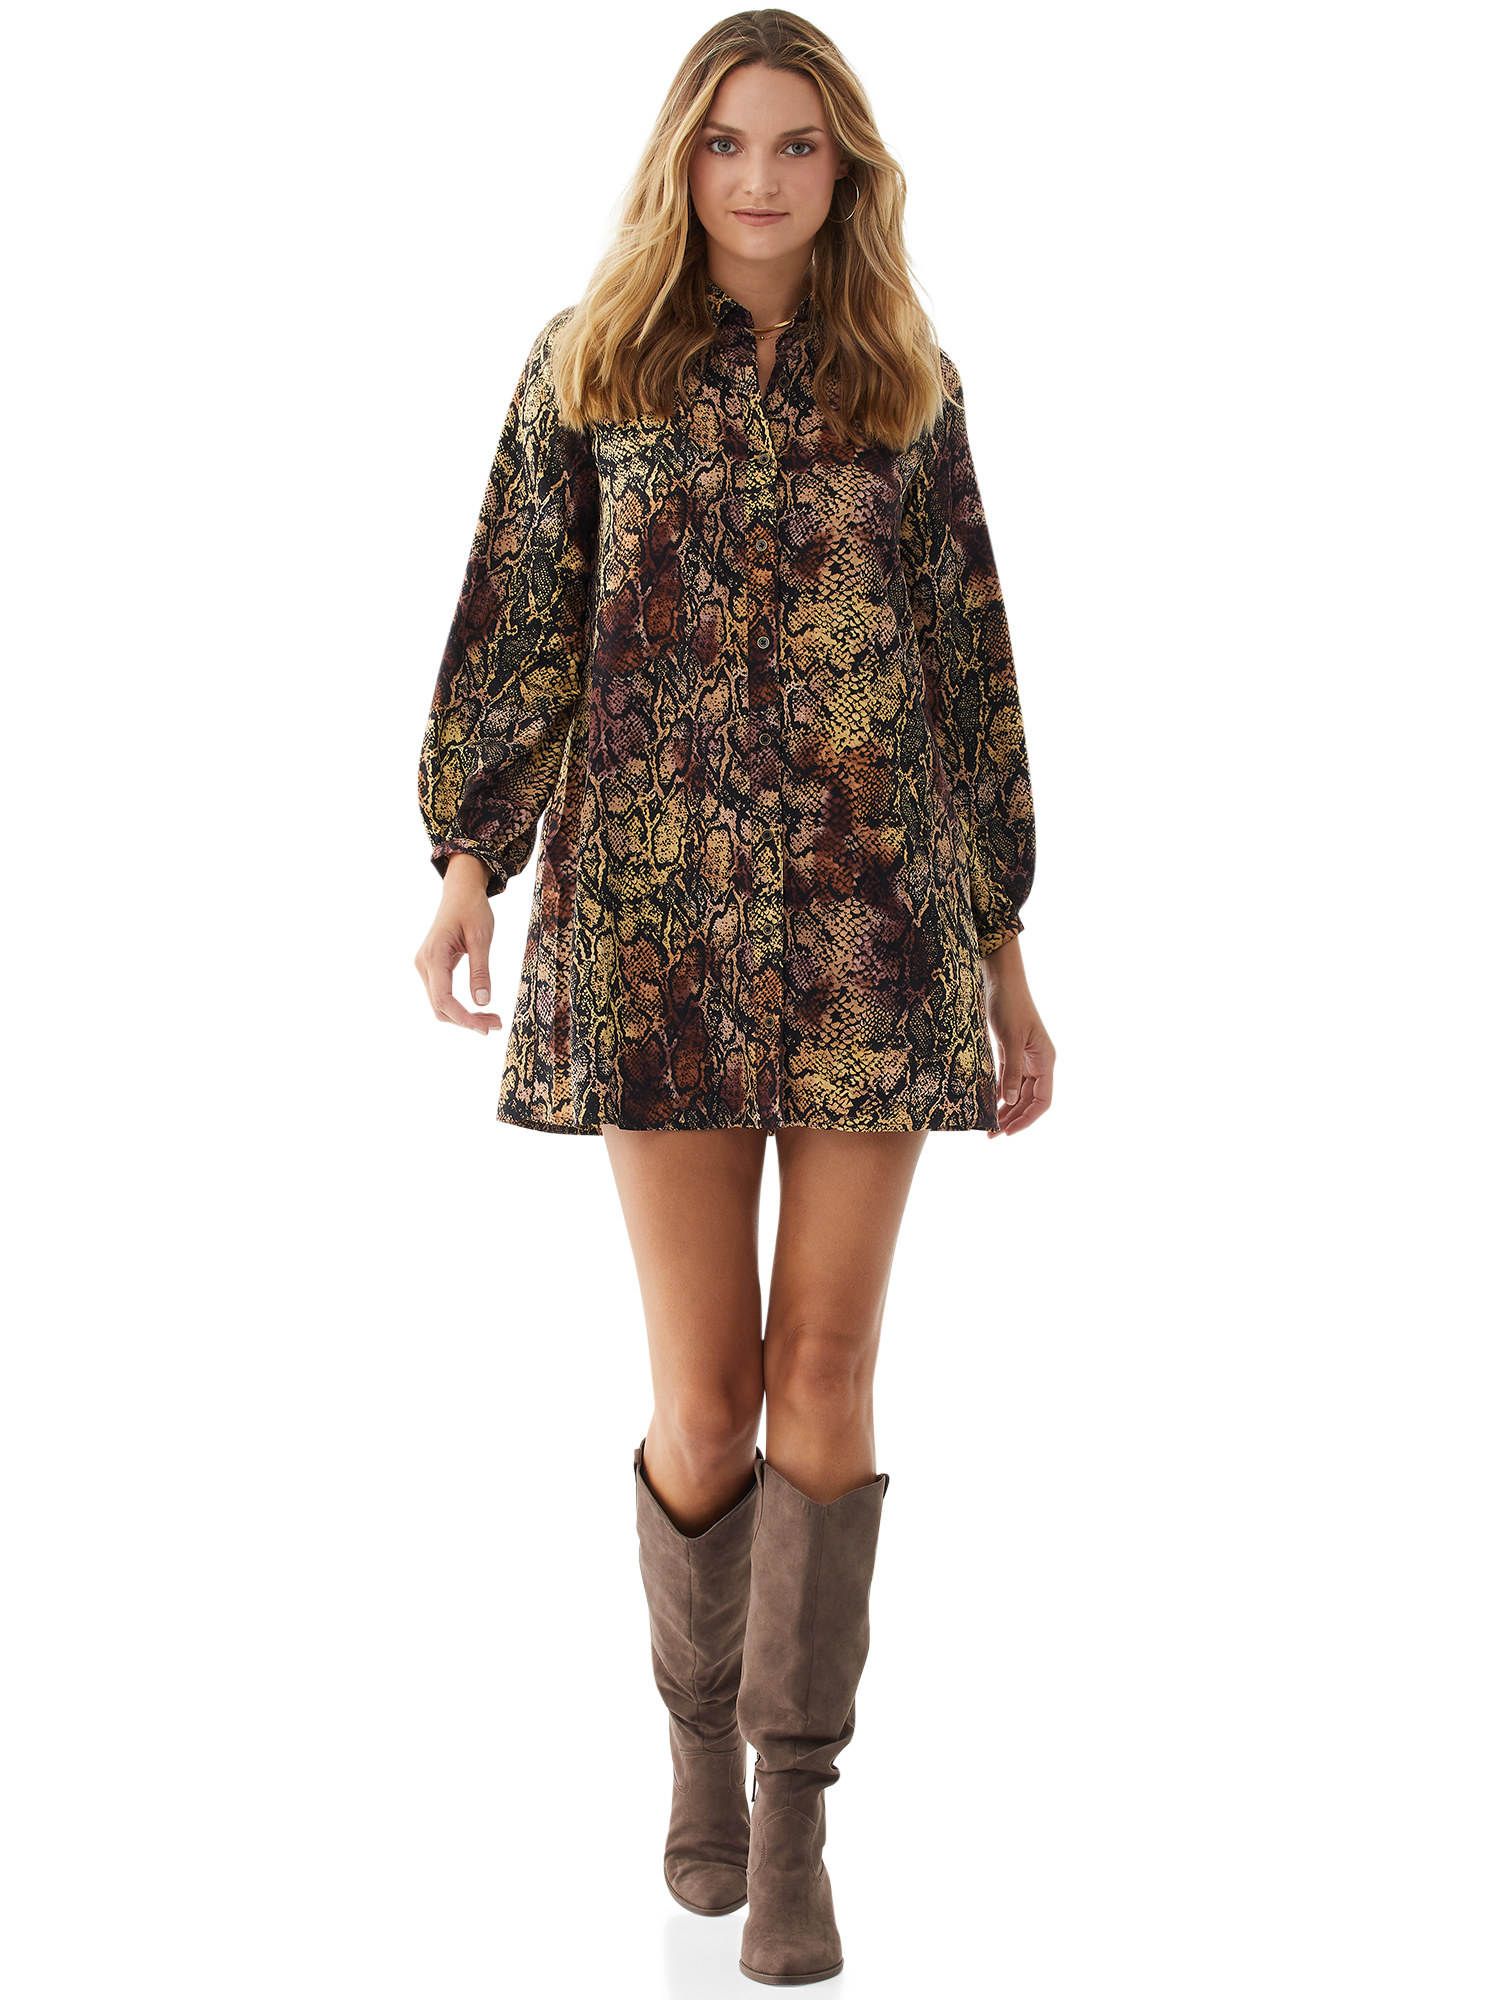 Model in snakeskin shirtdress and brown boots